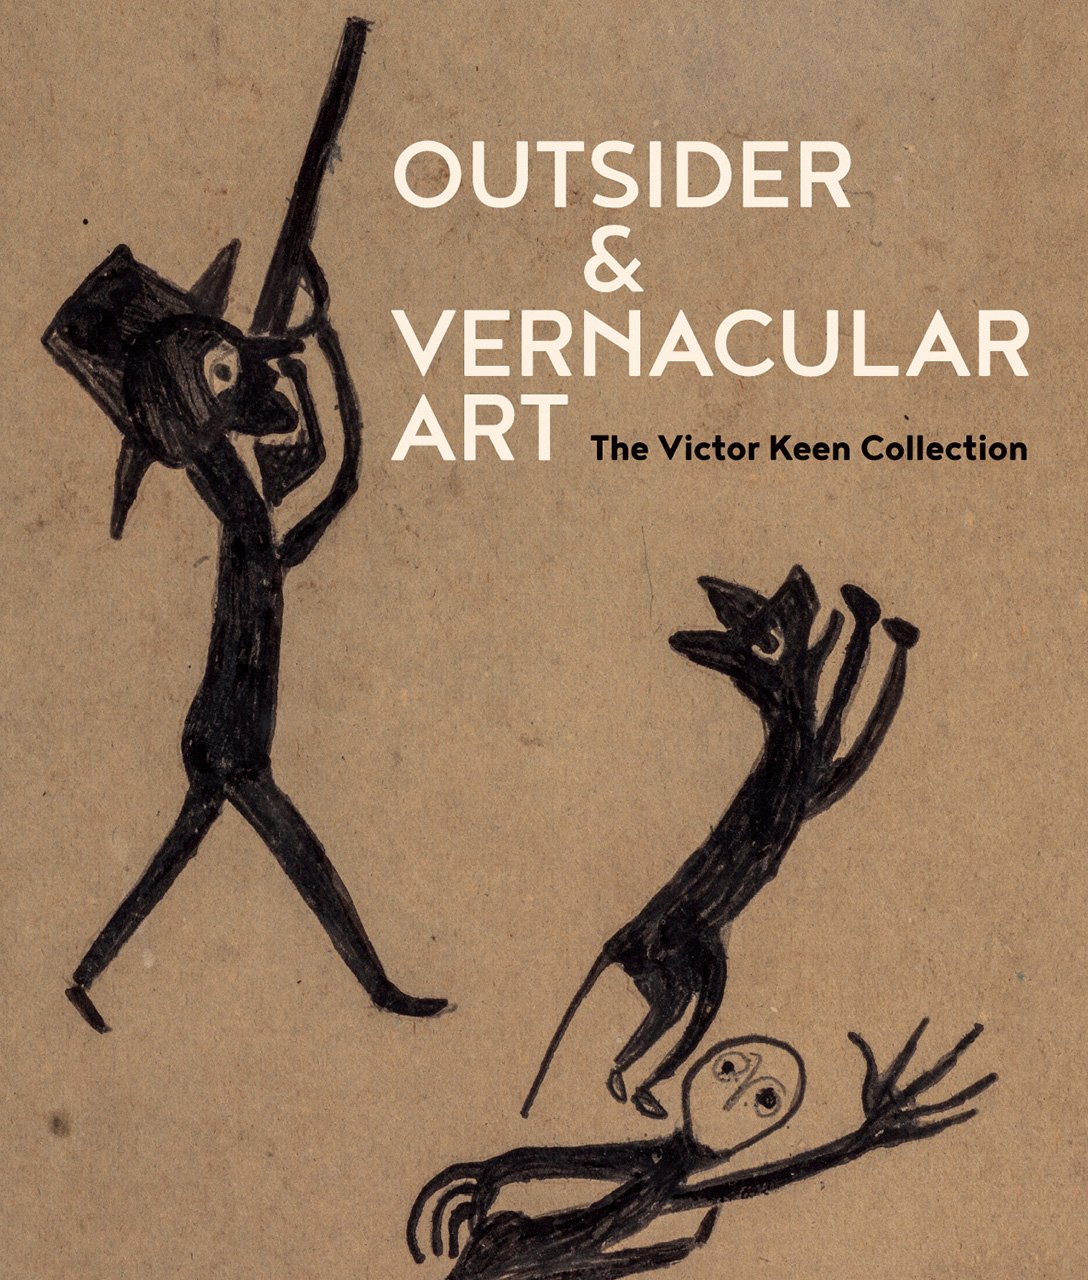 Outsider & Vernacular Art